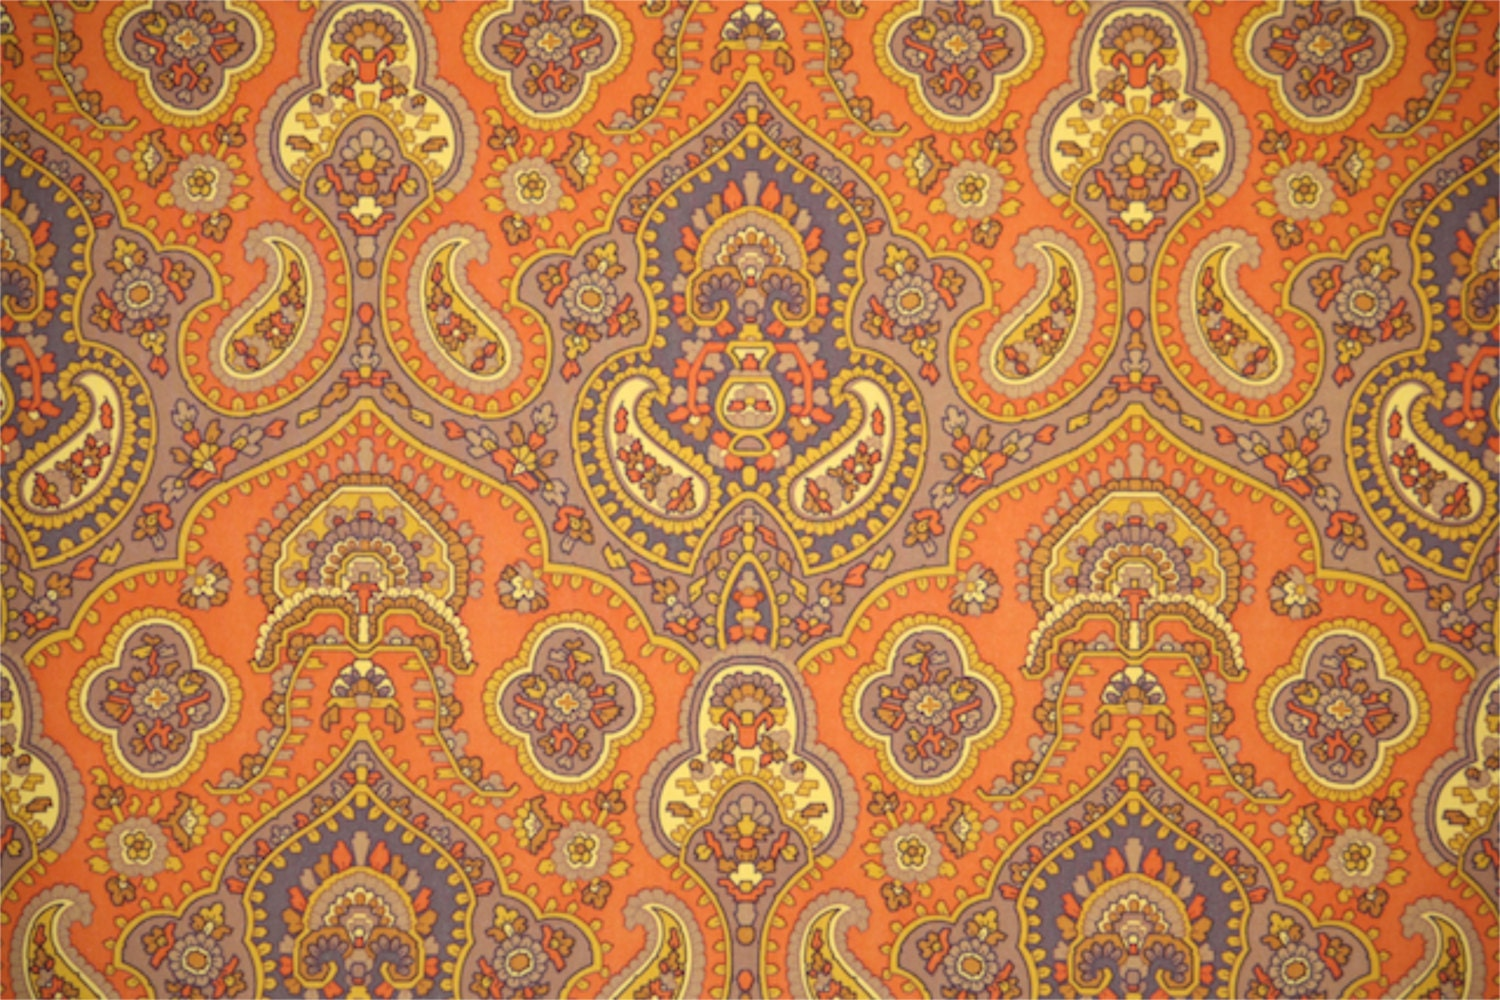 vintage wallpaper by the yard 70s retro by retrowallpaper